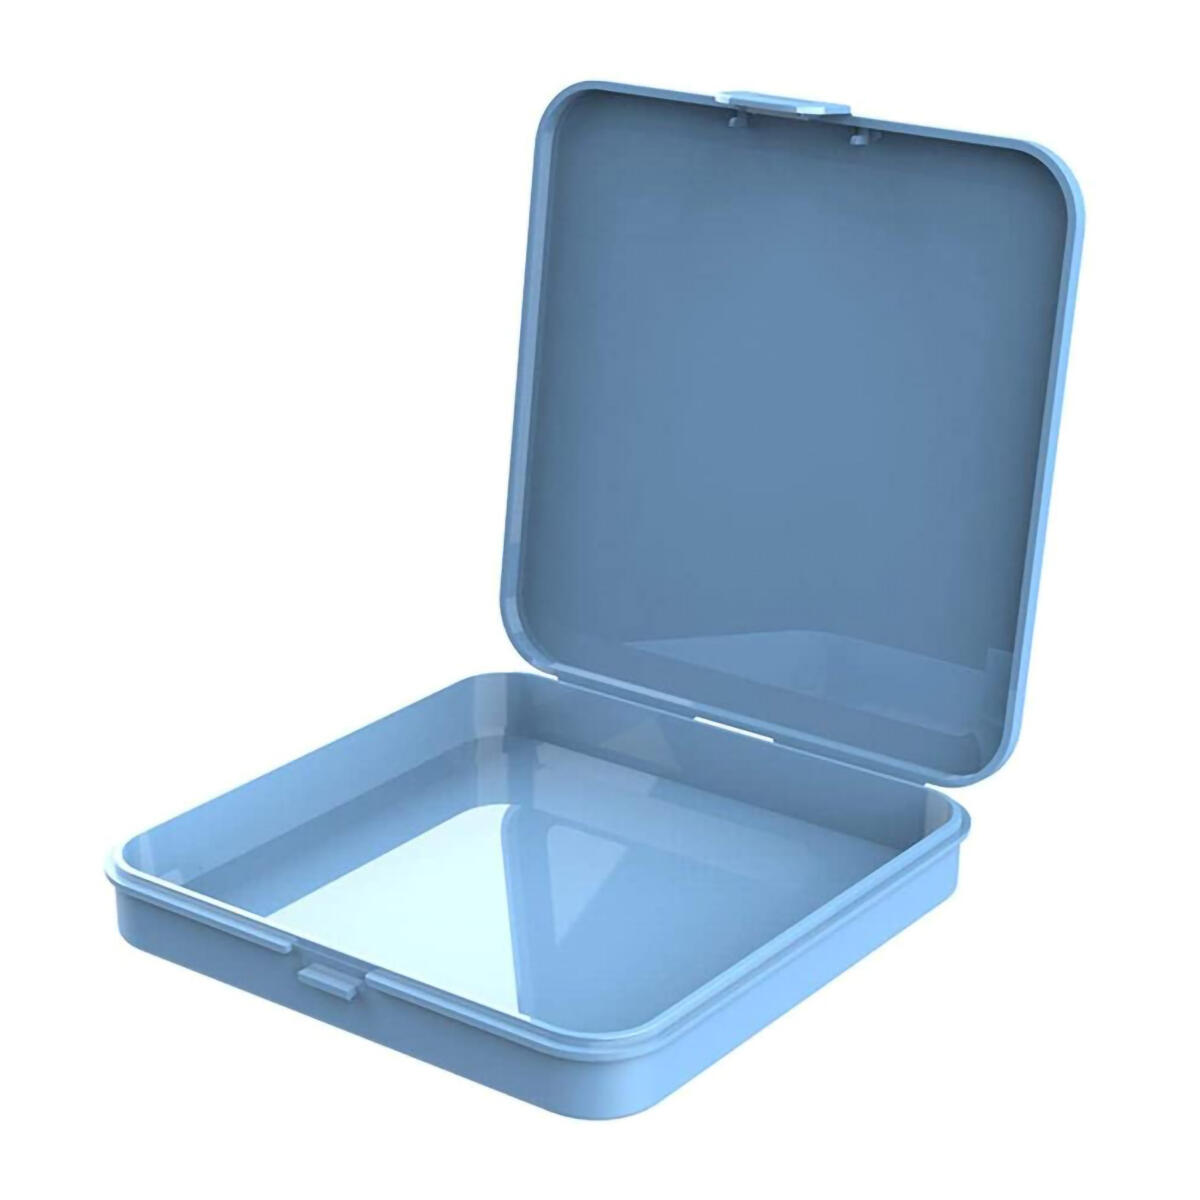 Portable Mask Case - Perfectly Polished Thick Mask Storage Case for Reusable and Disposable Masks - Food-Grade Plastic Mask Case Holder, Premium Mask Container, No burrs